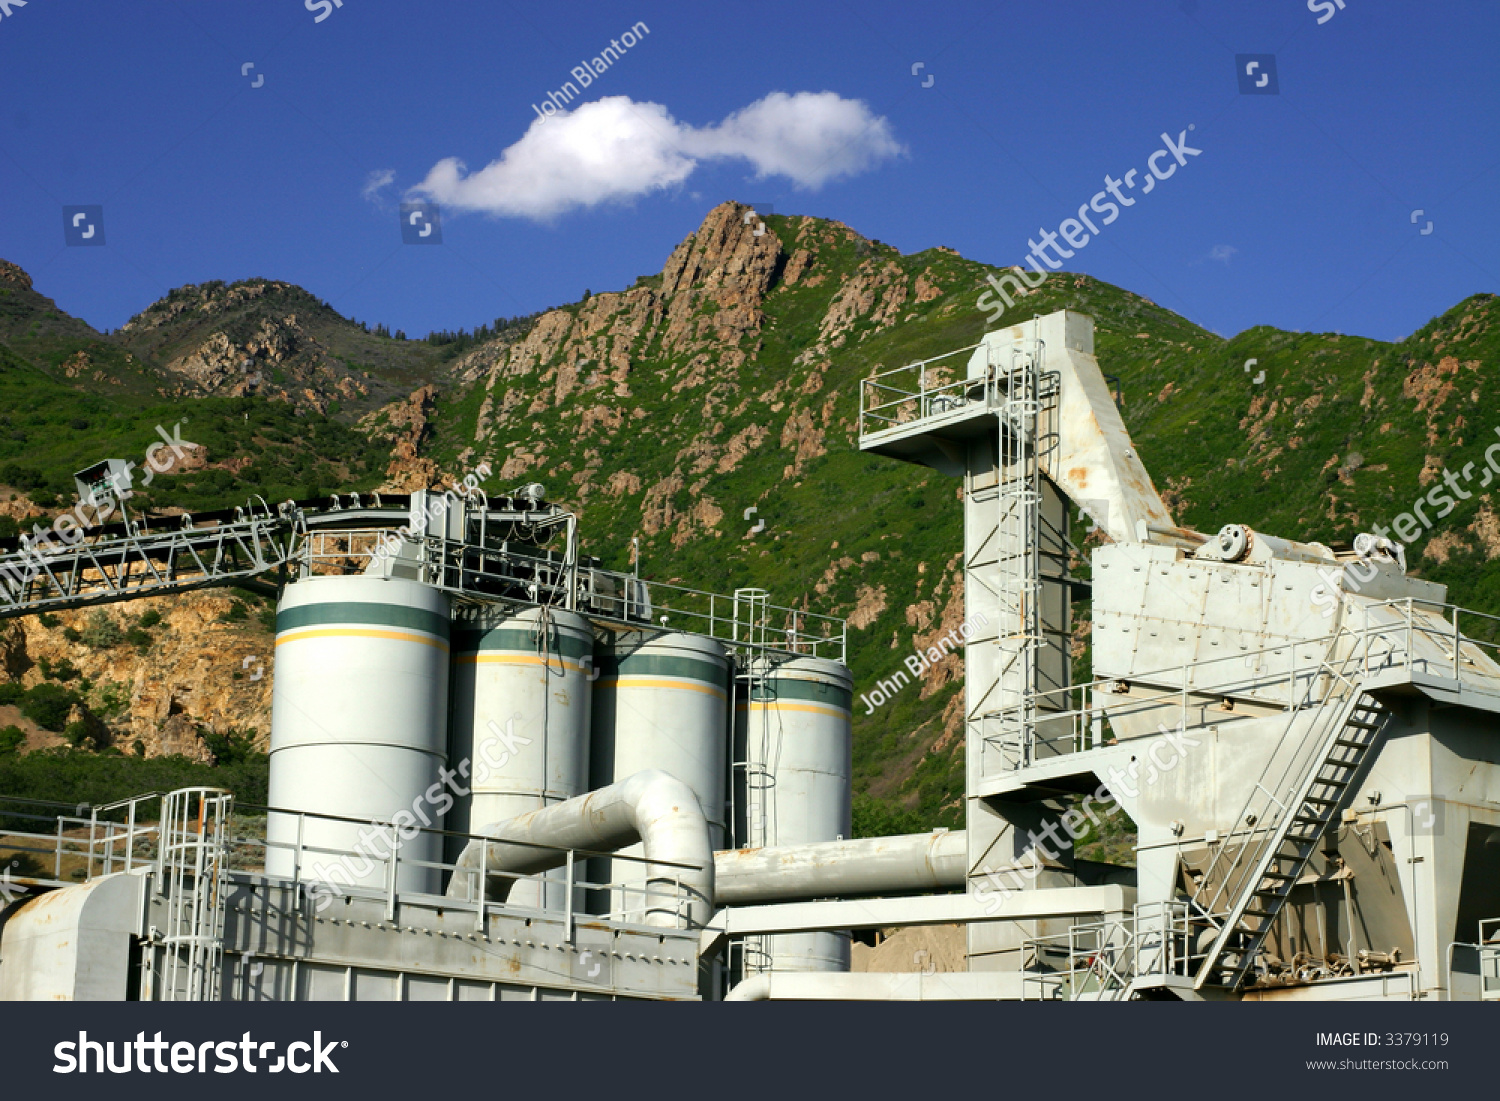 Utah Cement Plants : Cylindrical tanks and concrete plant in utah stock photo